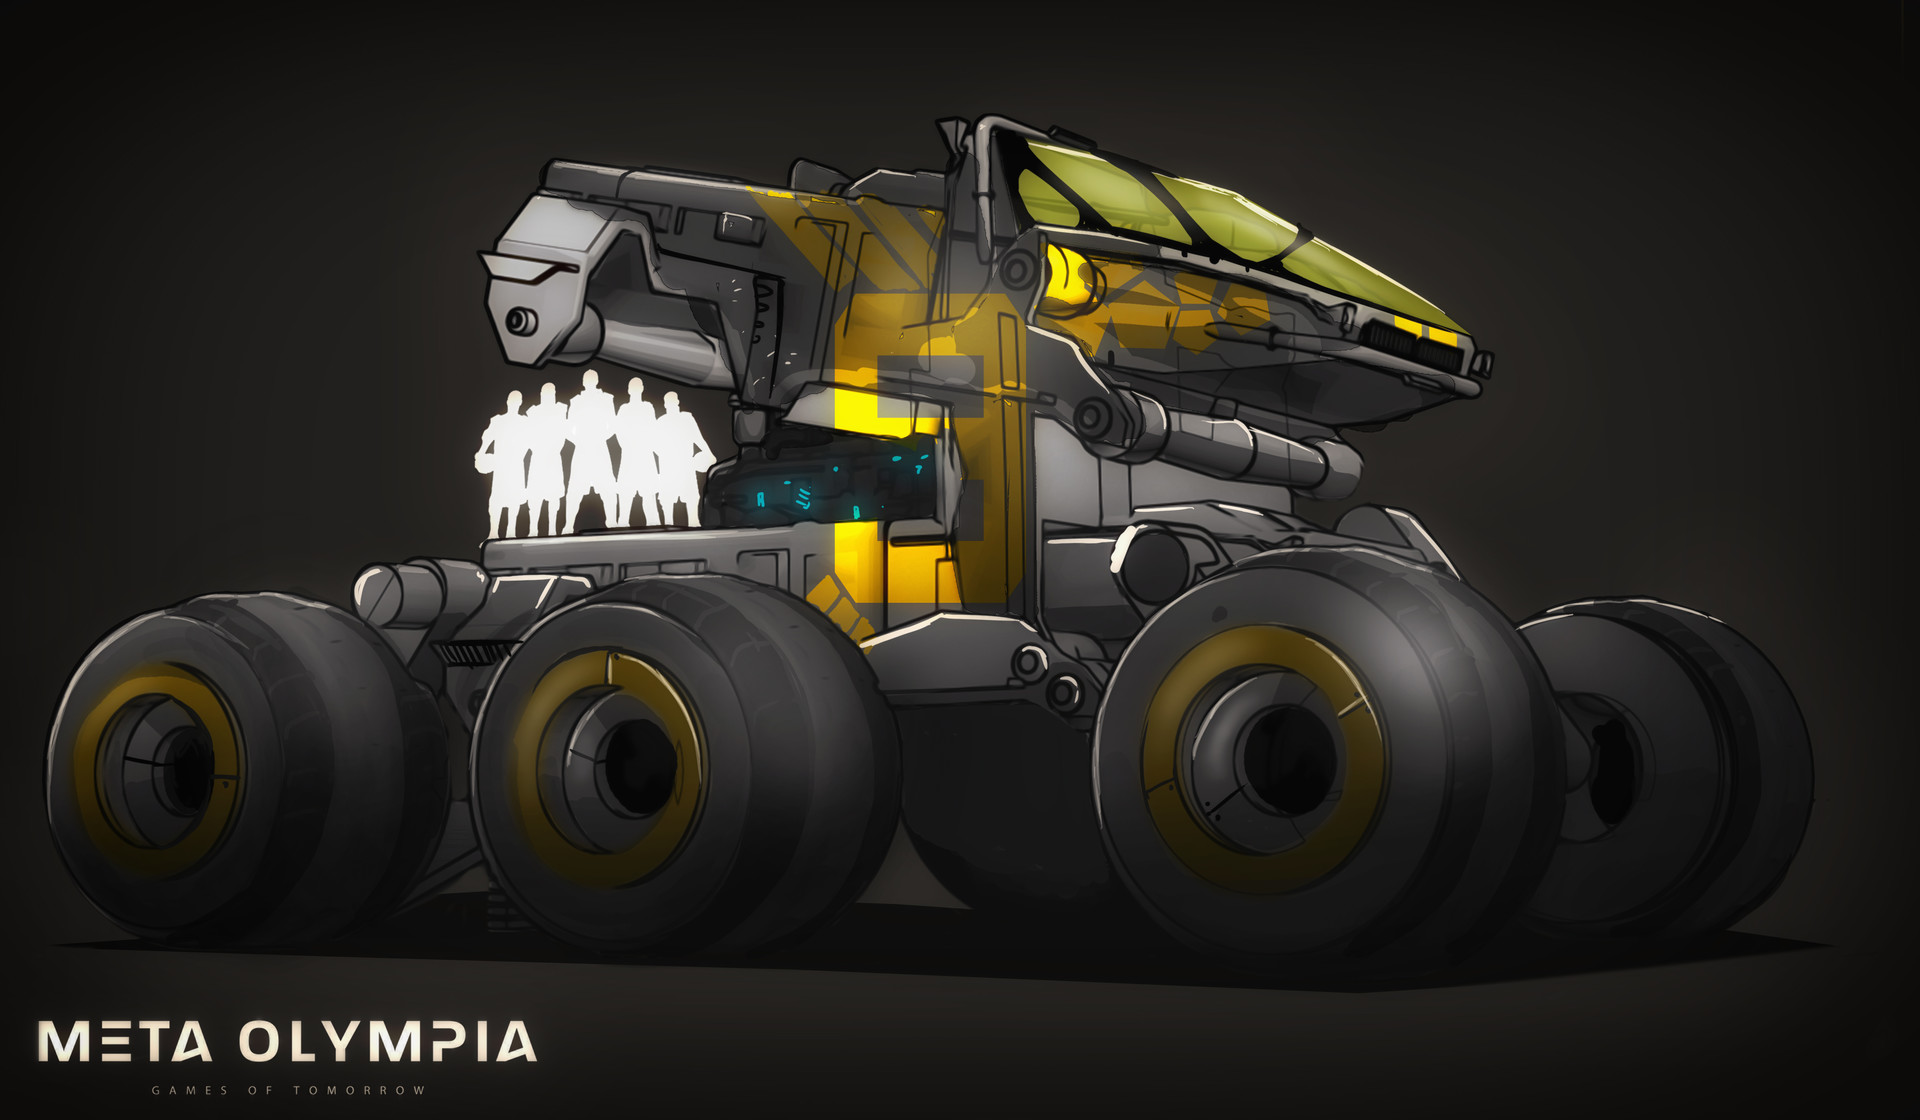 Meta olympia vehicles 4